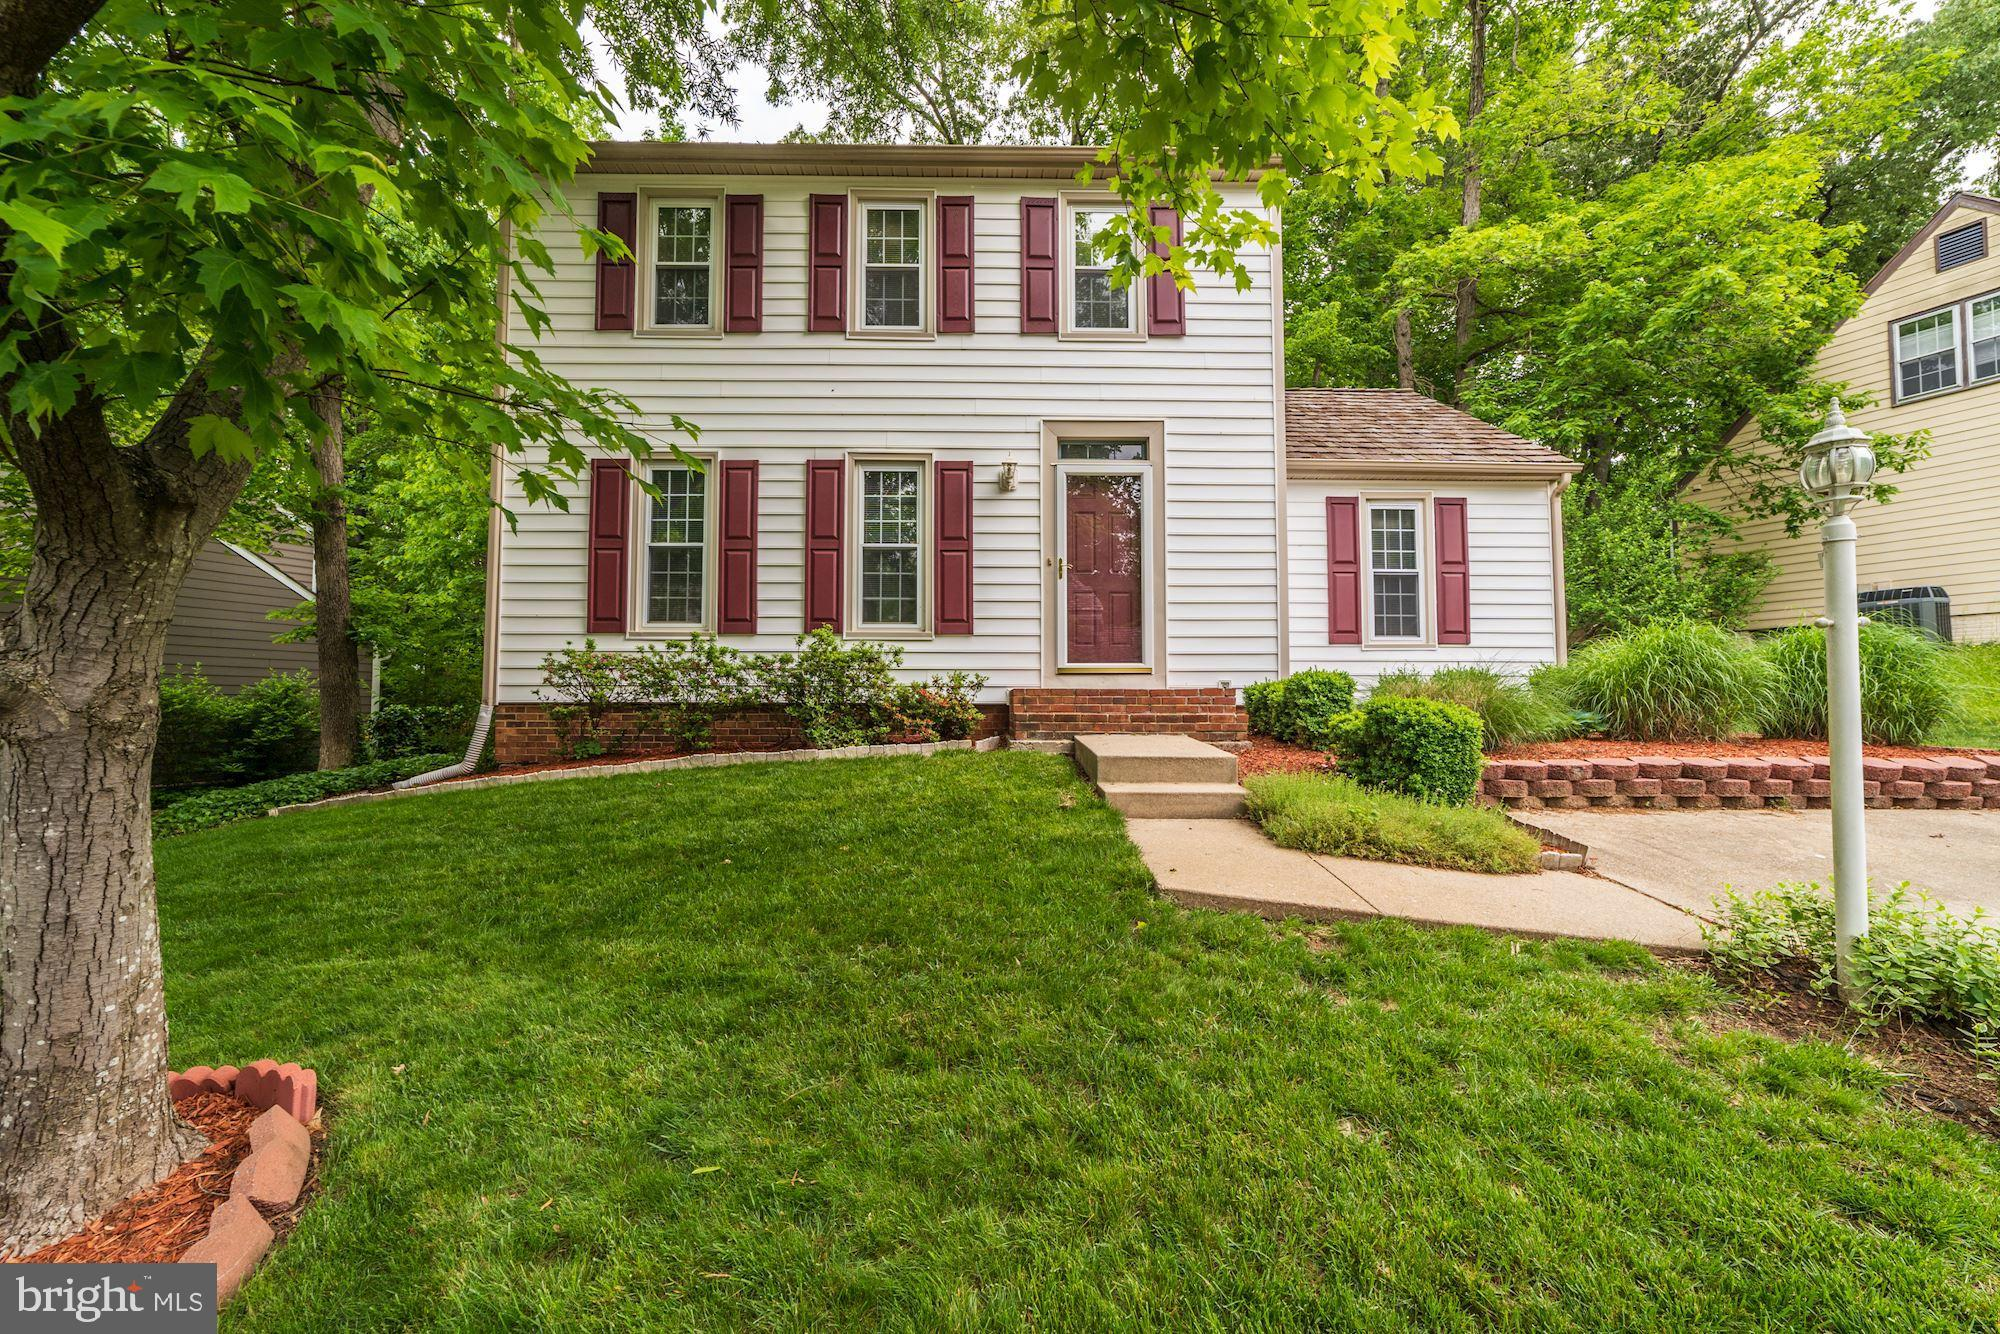 Beautiful colonial style home. Close to parks, playgrounds, and amenities. There are three finished levels. Fourth bed is in the basement. House has park like setting and backyard with deck. Reduced to 10k.